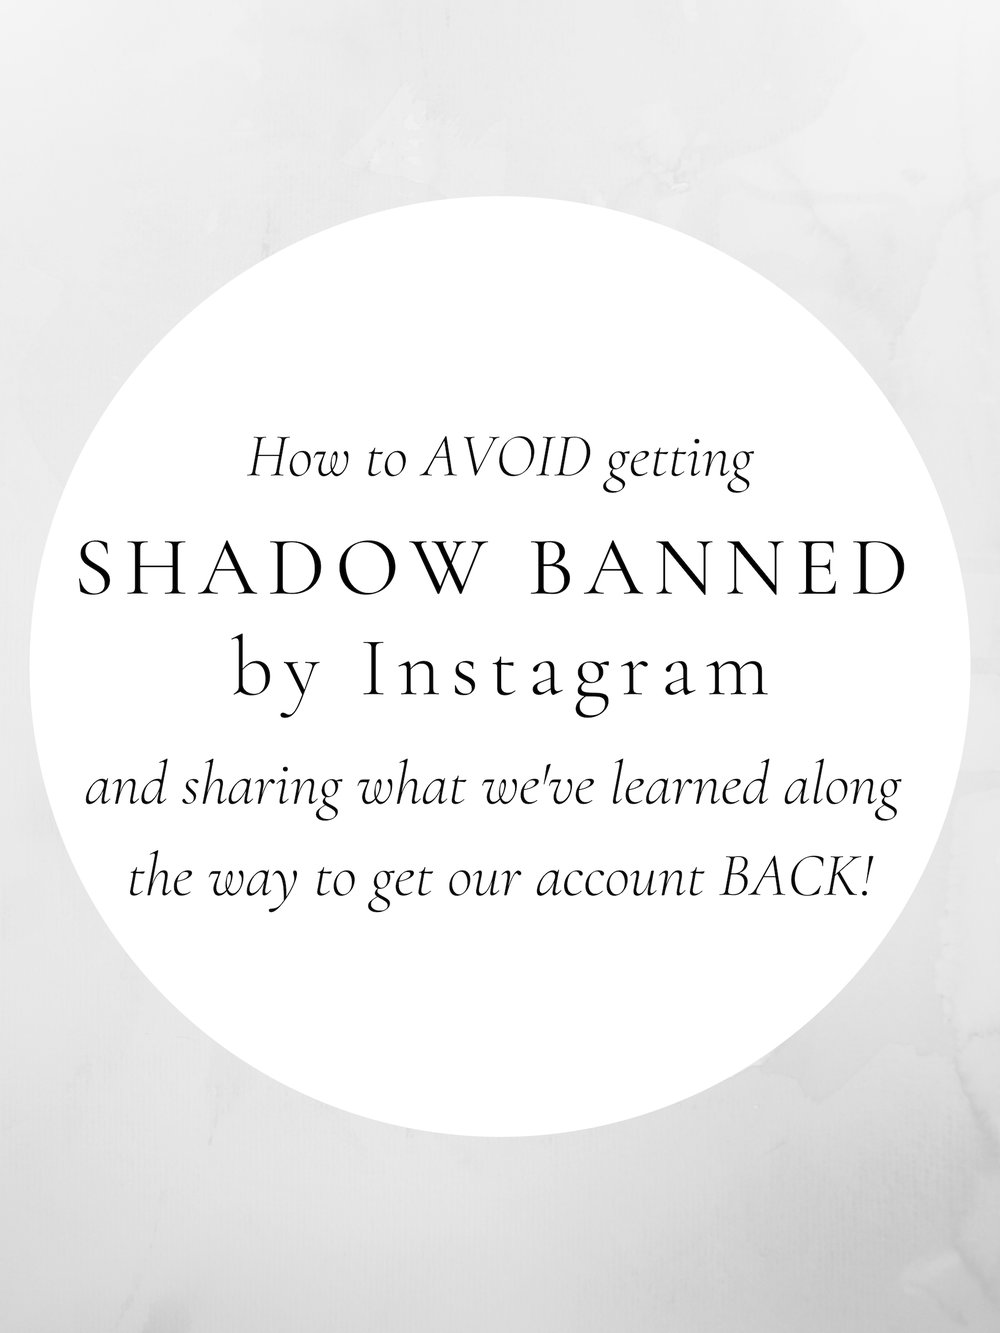 SHADOW BANNED ON INSTAGRAM